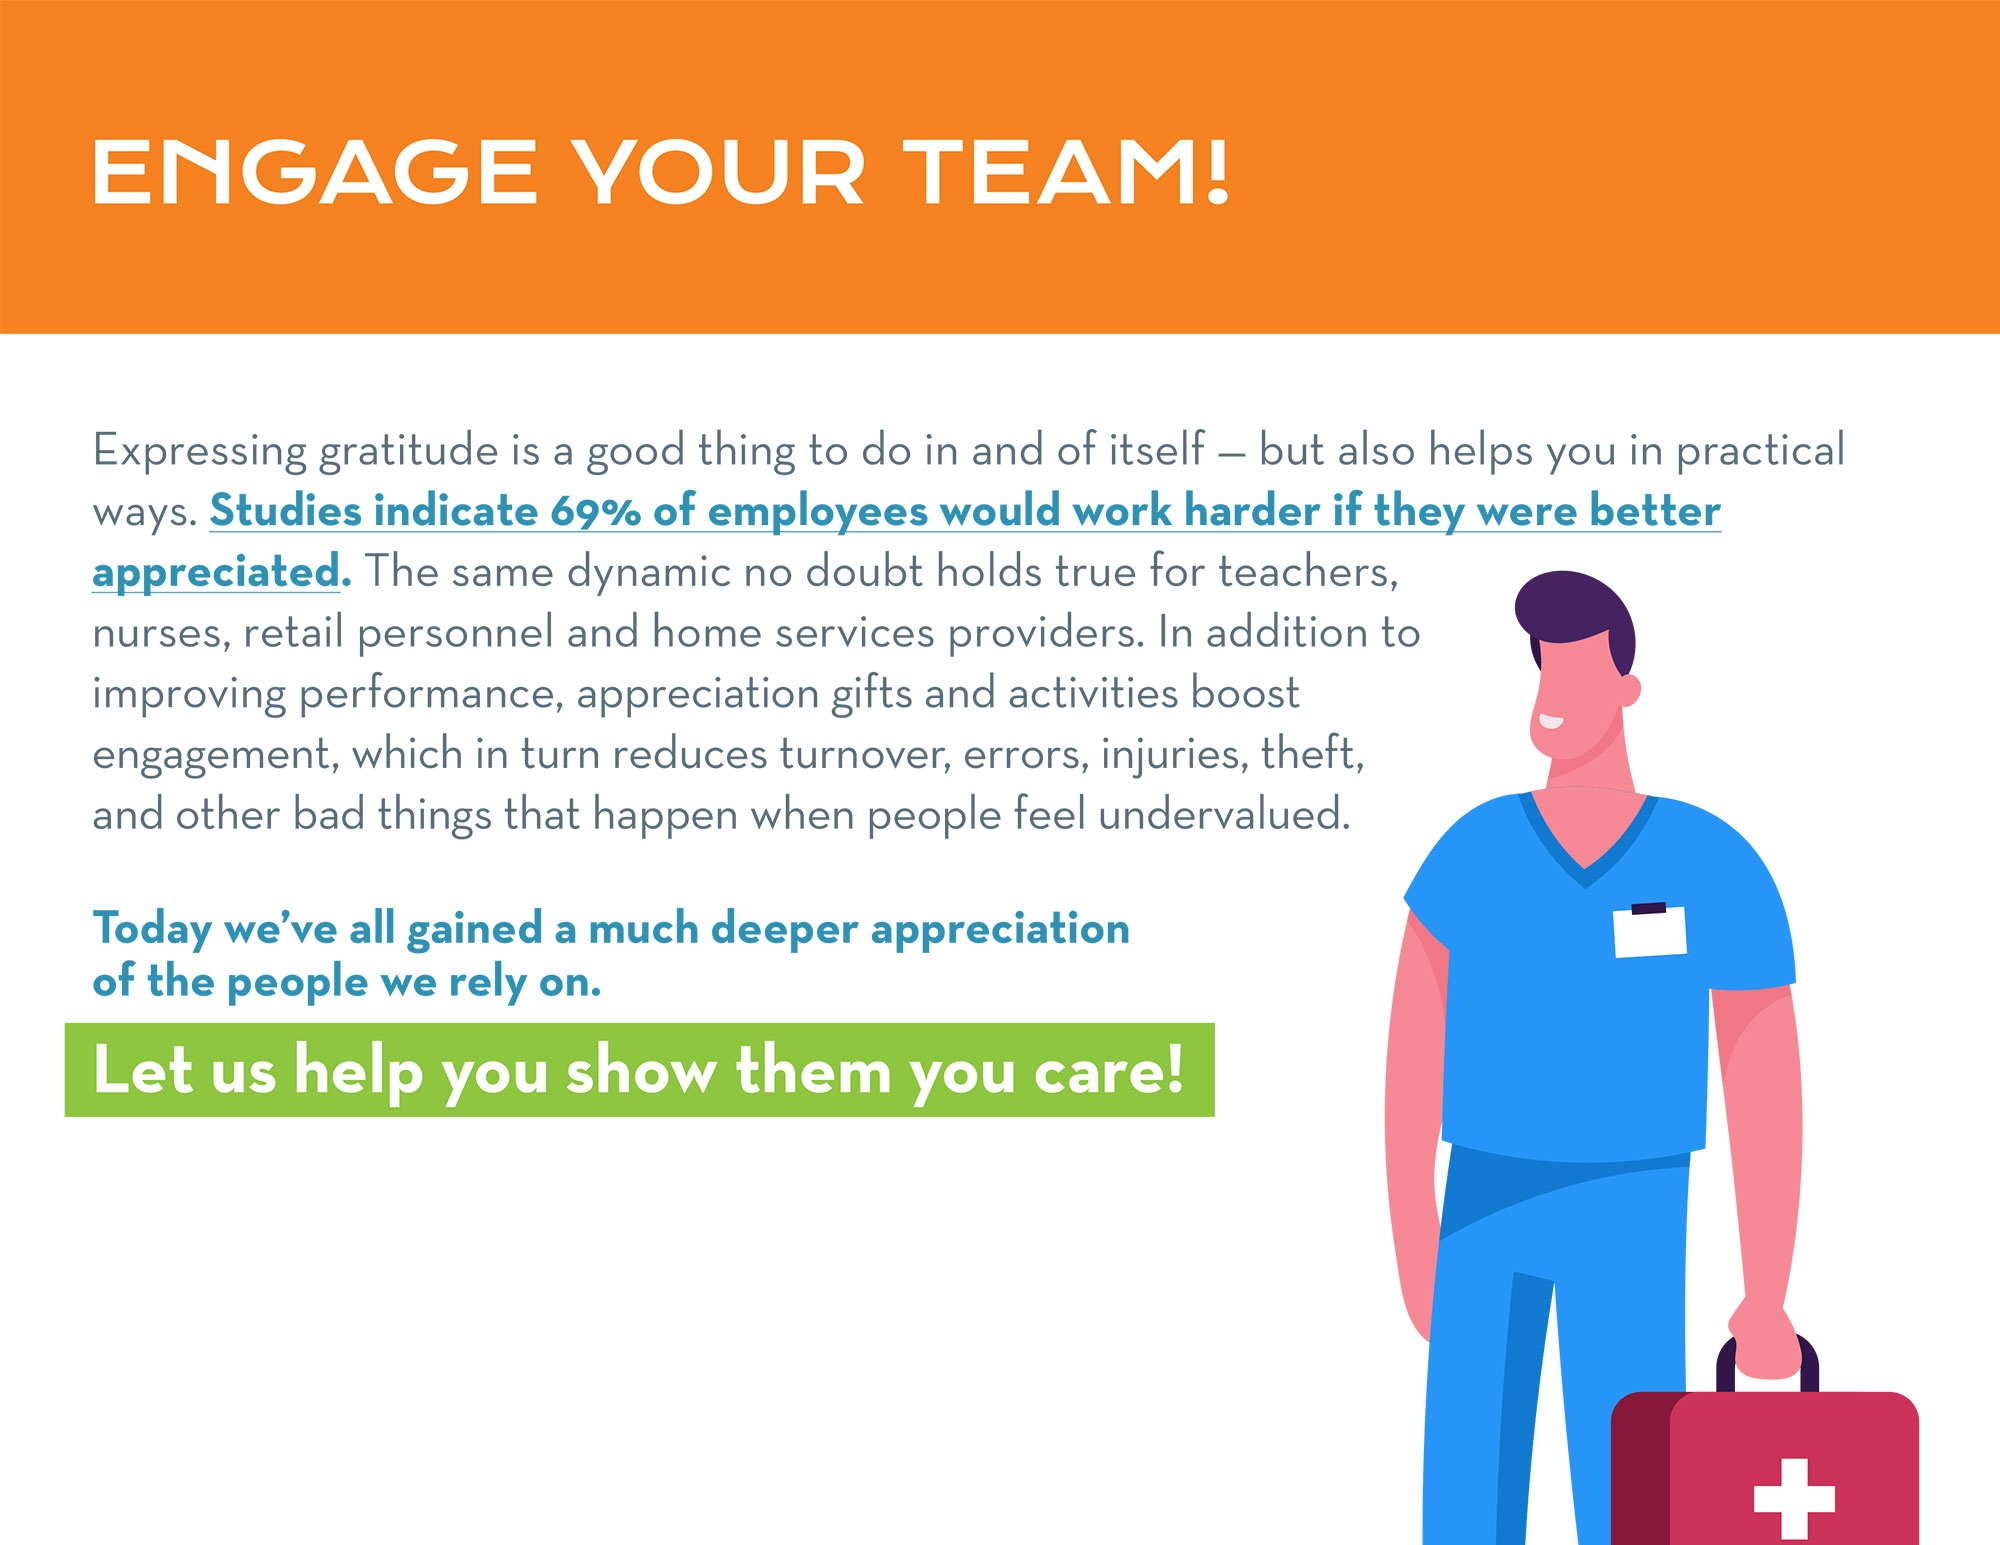 How to Engage Your Team